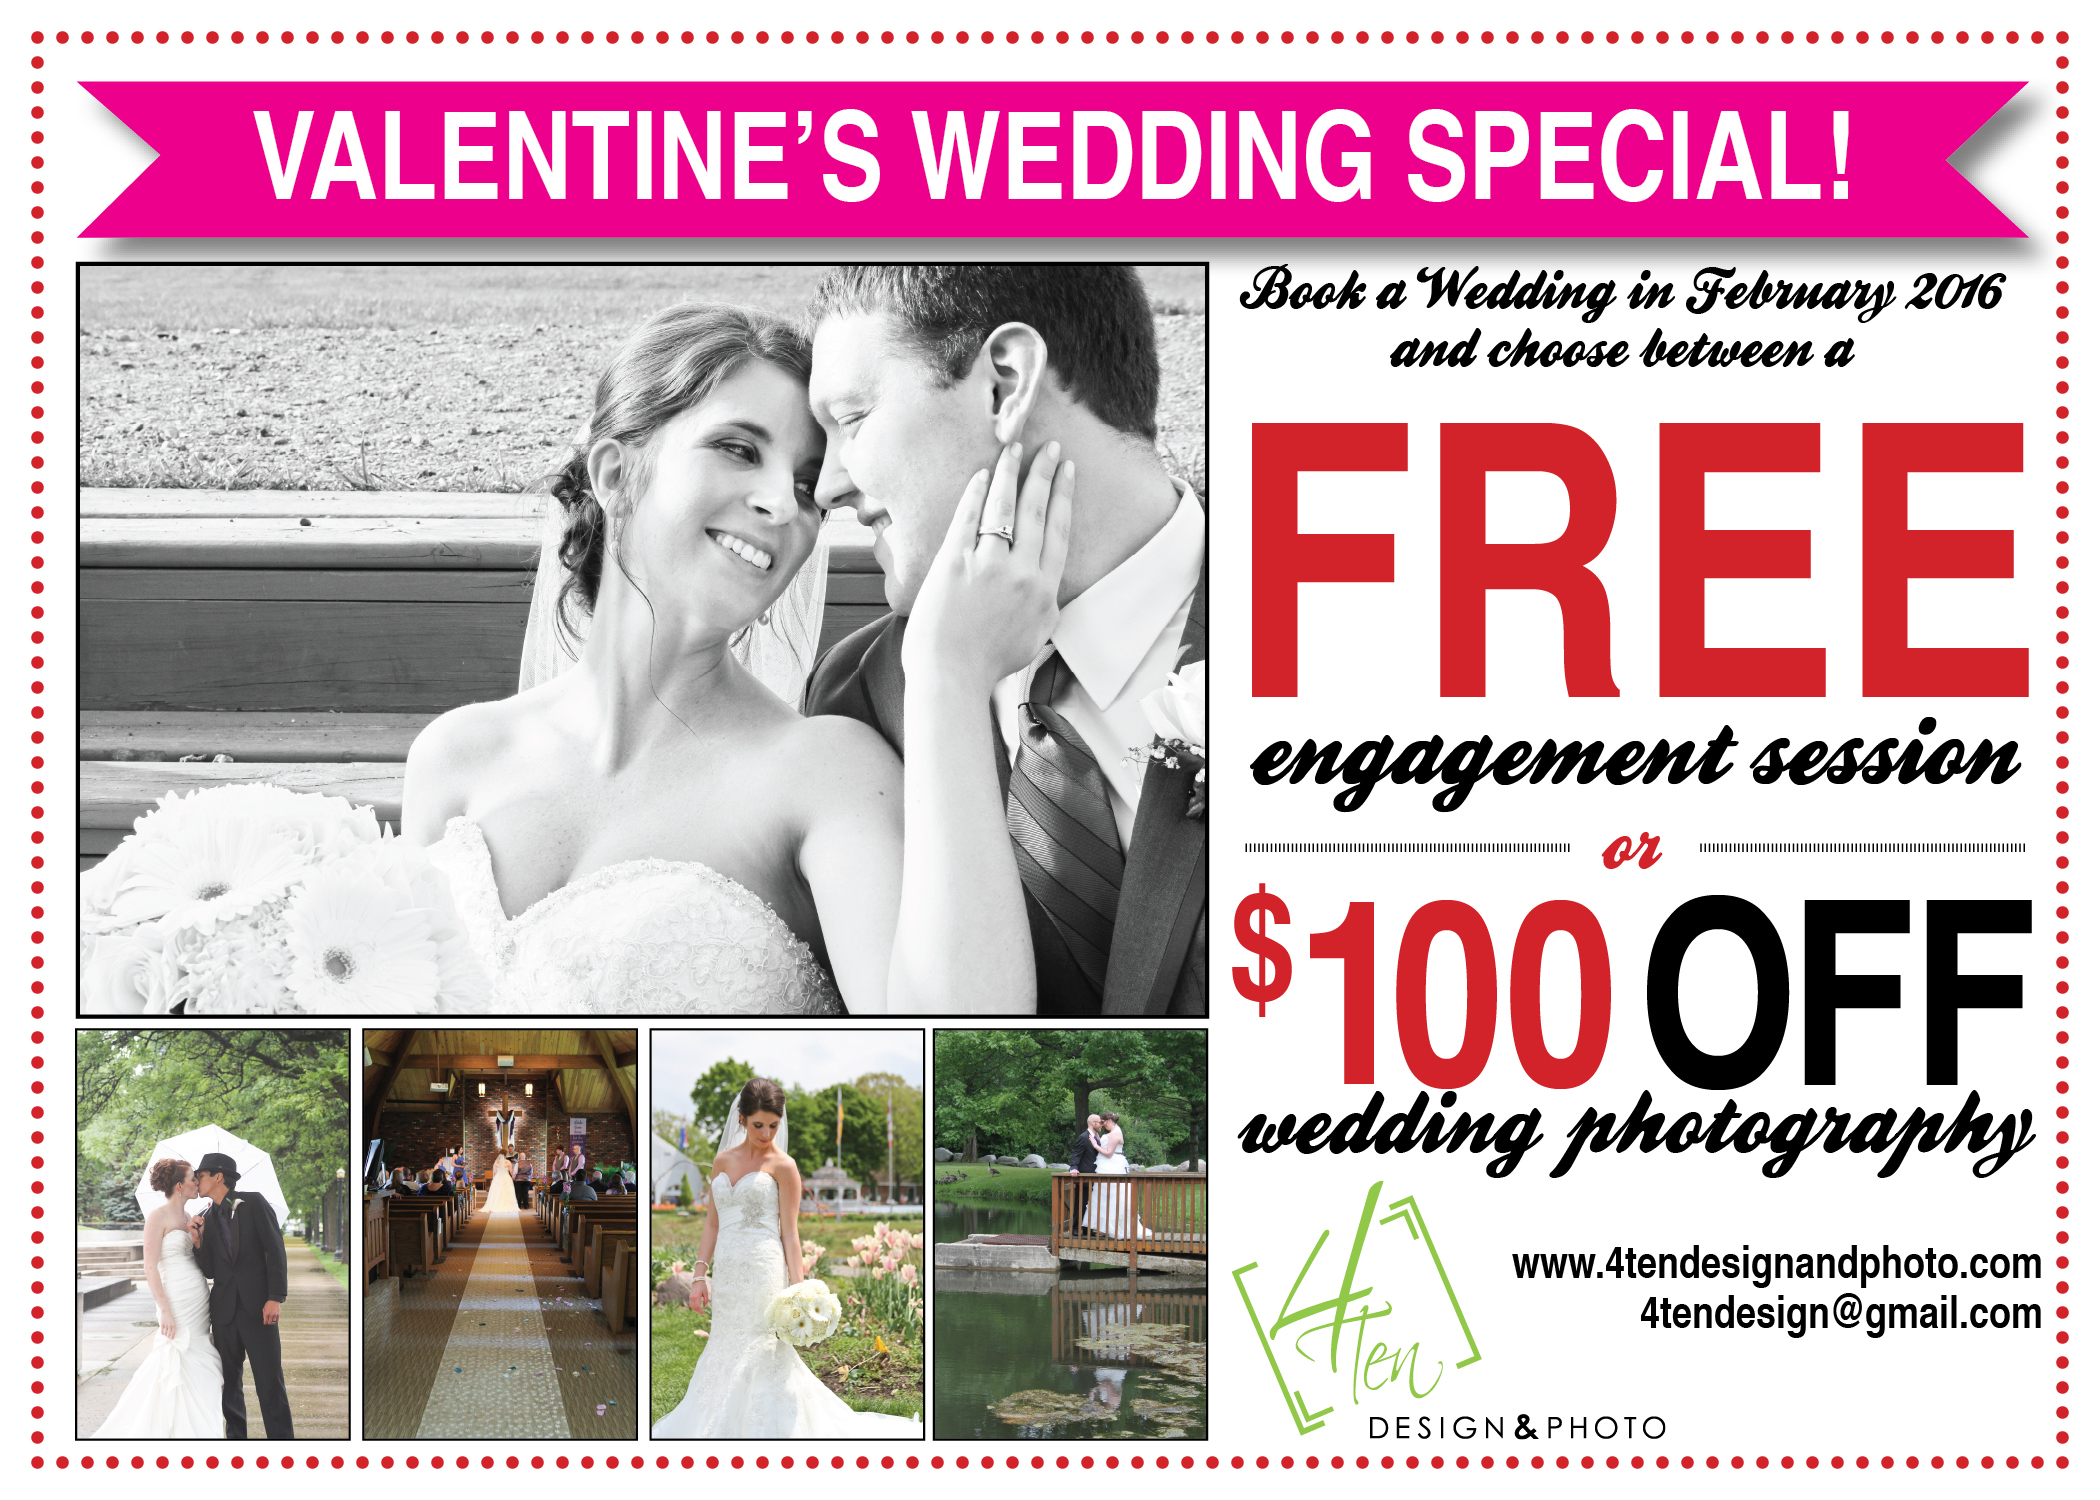 That's right, FREE Engagement session or $100 OFF weddings when you book by the end of February! Contact me for more details.